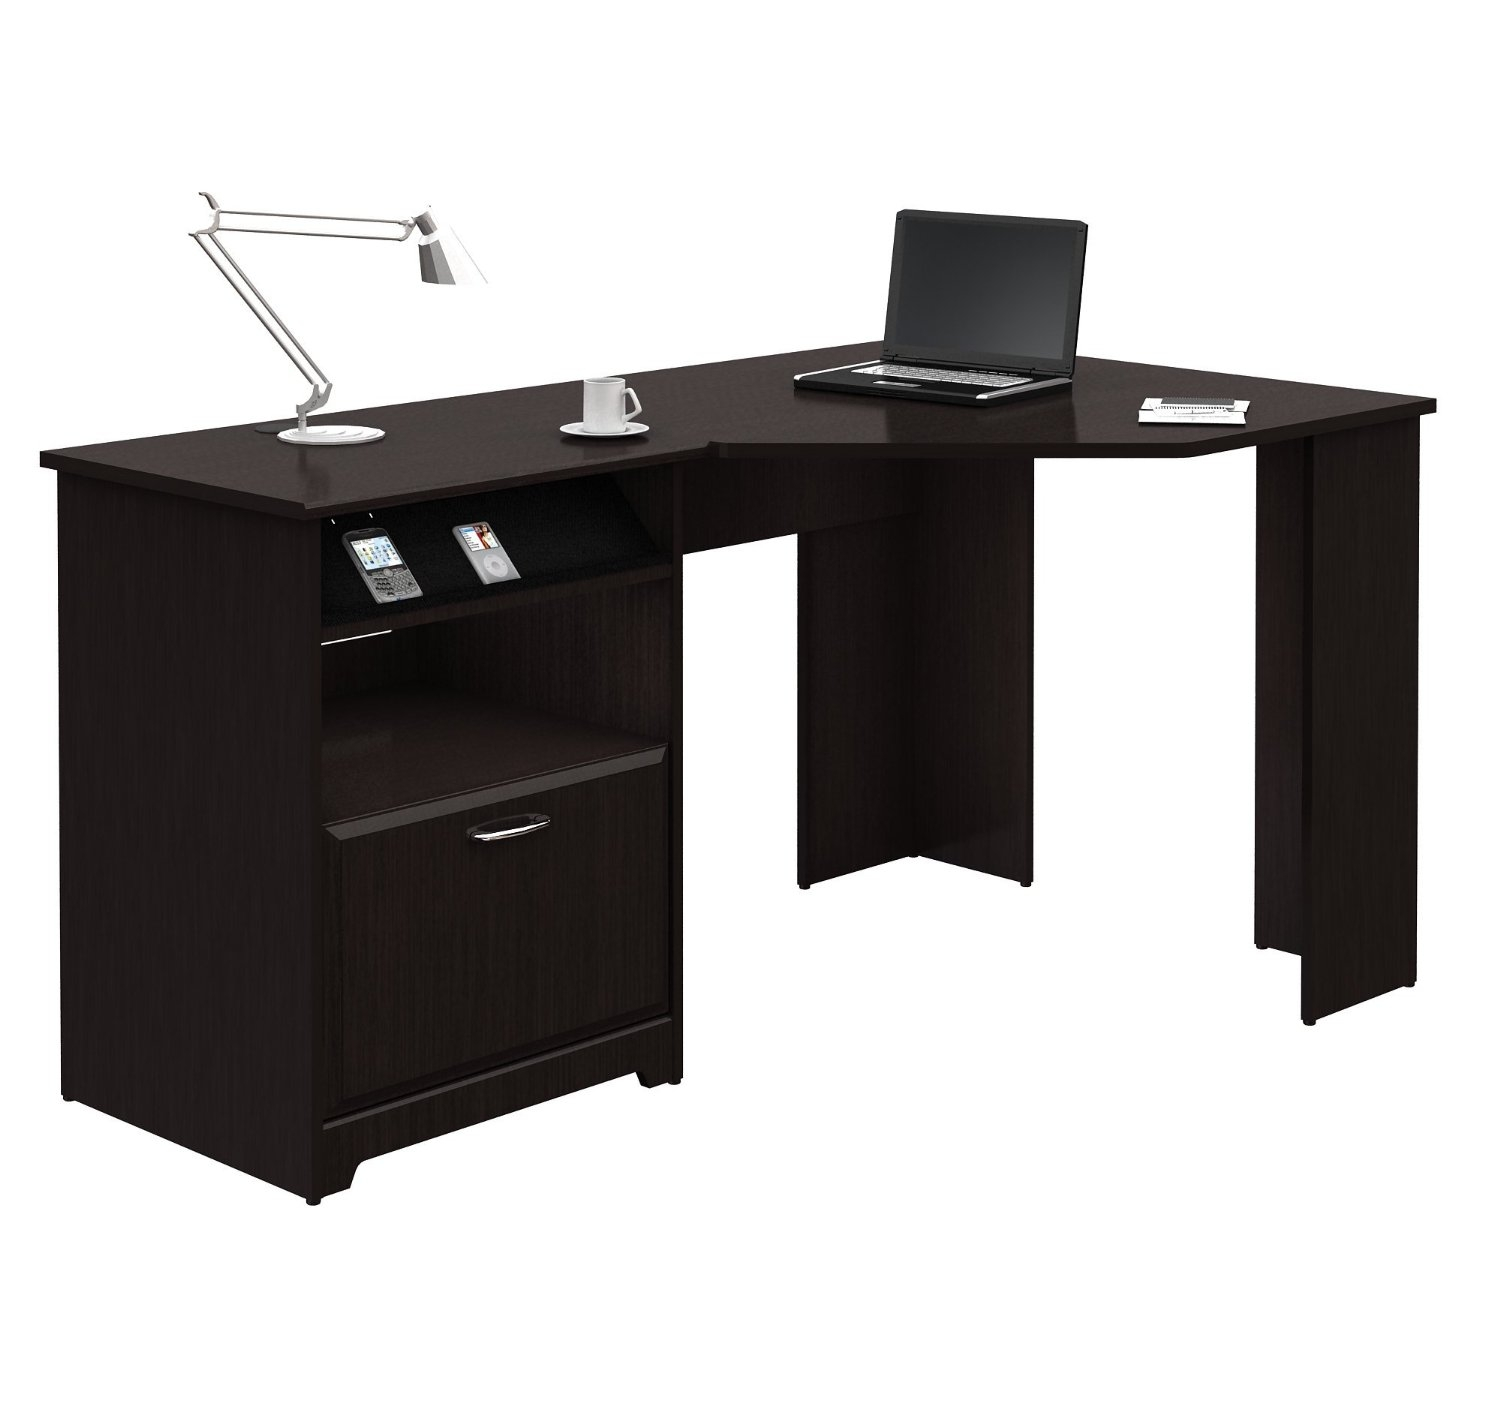 L Shaped Corner Computer Desk With File Drawer In Espresso Wood Finish Fastfurnishings